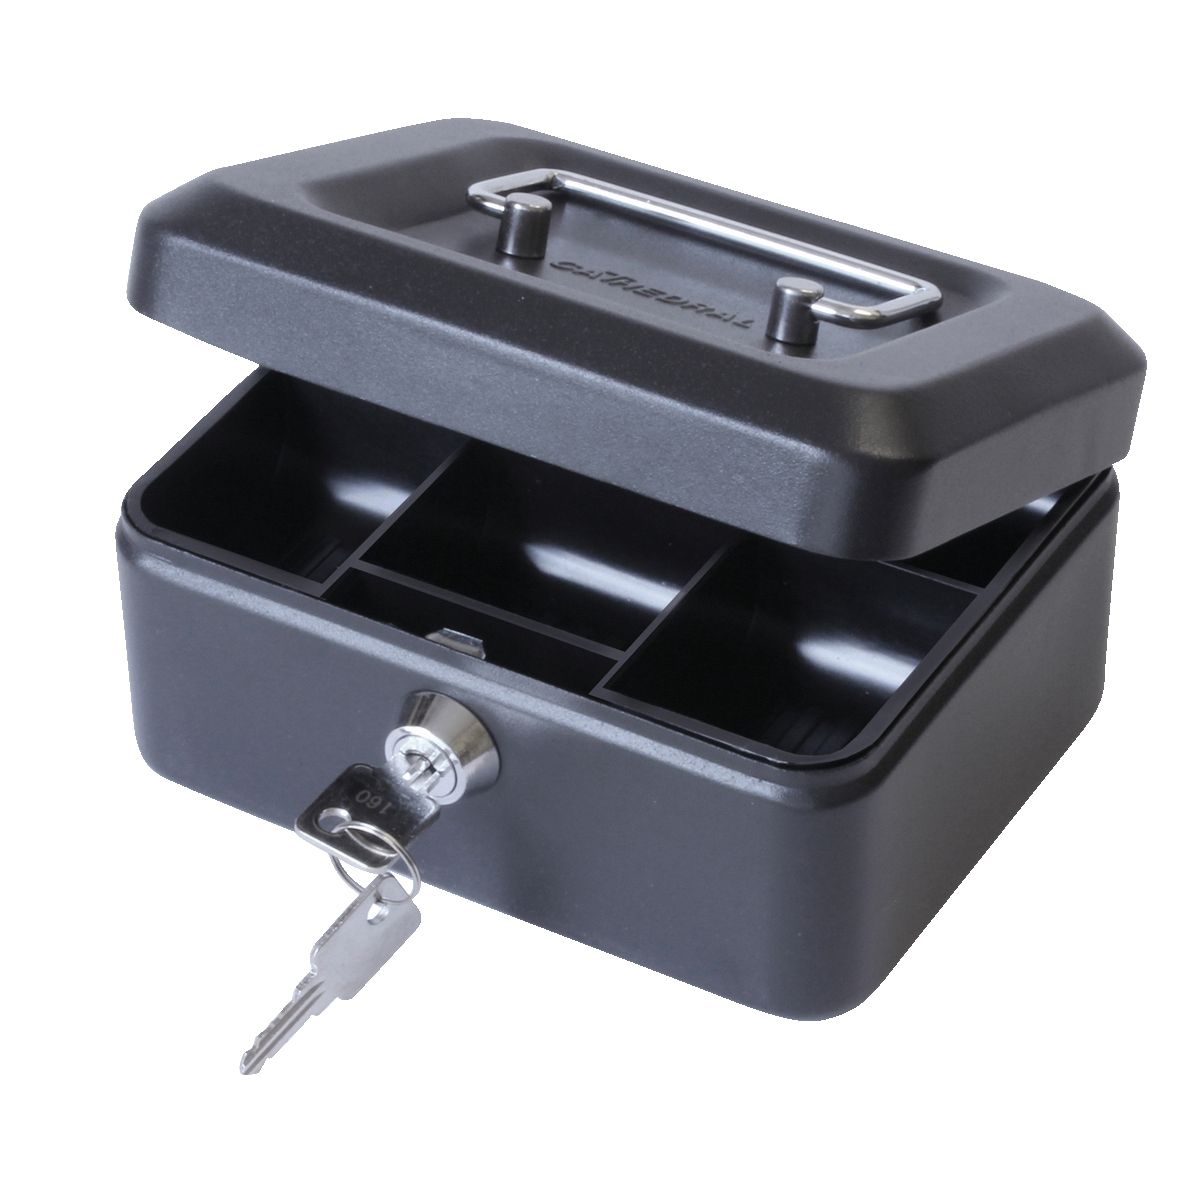 Cash or ticket boxes Cash Box with Lock & 2 Keys Removable Coin Tray 6 Inch W152xD115xH70mm Black